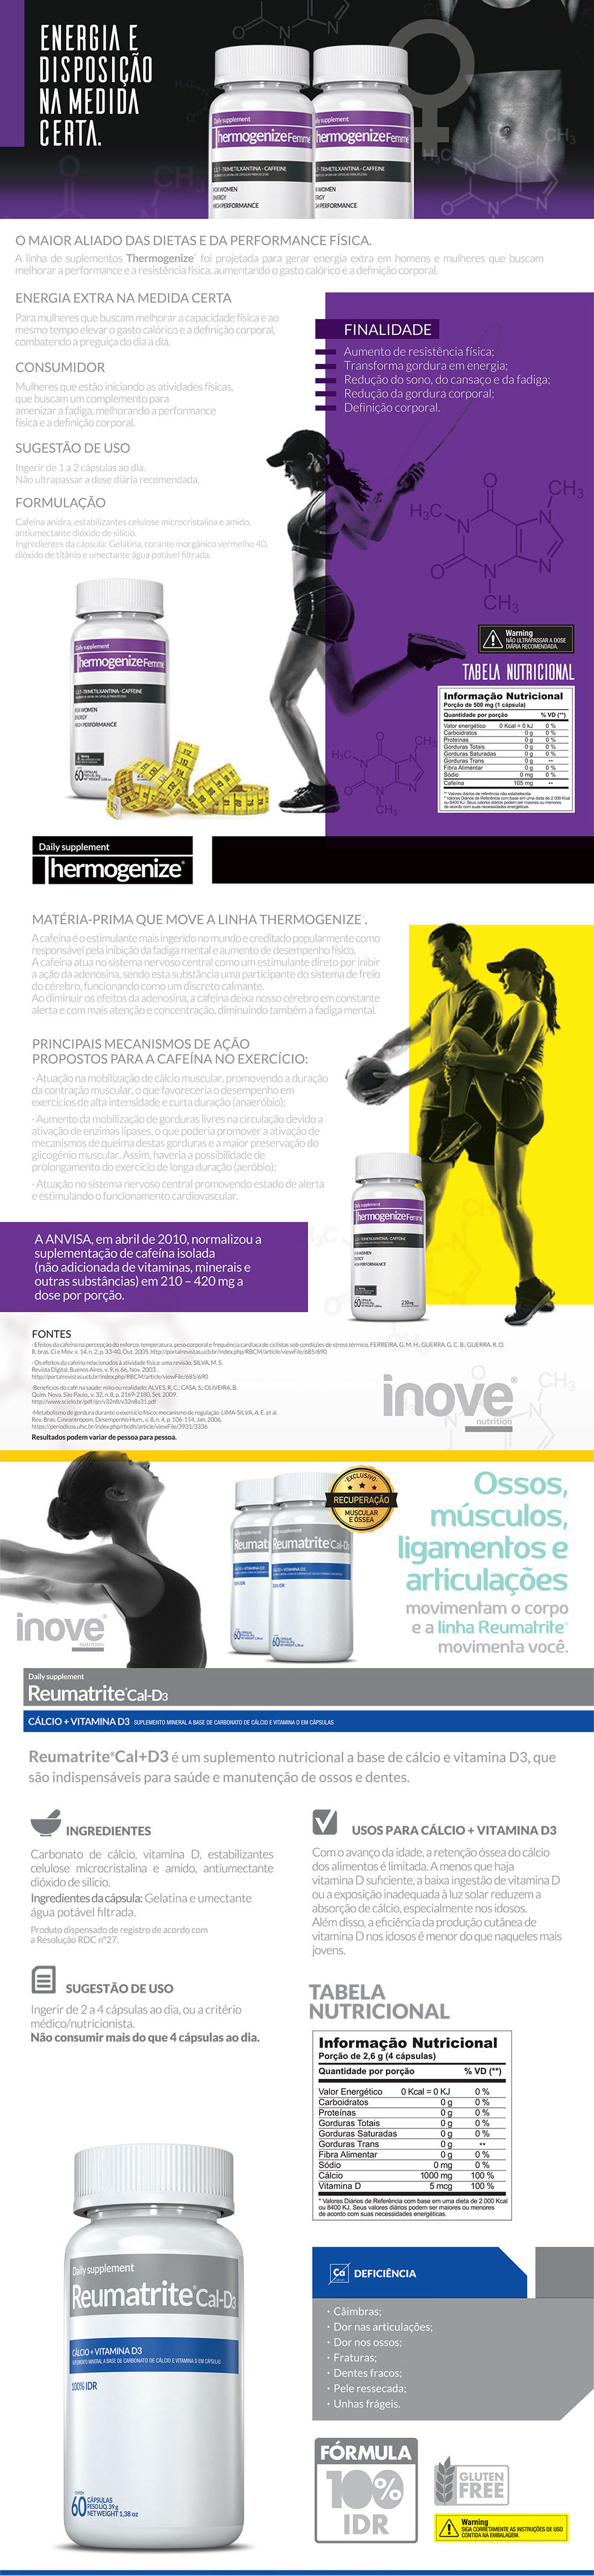 Thermogenize Femme® + Reumatrite® Cal-D3 + Squeeze Inove Nutrition